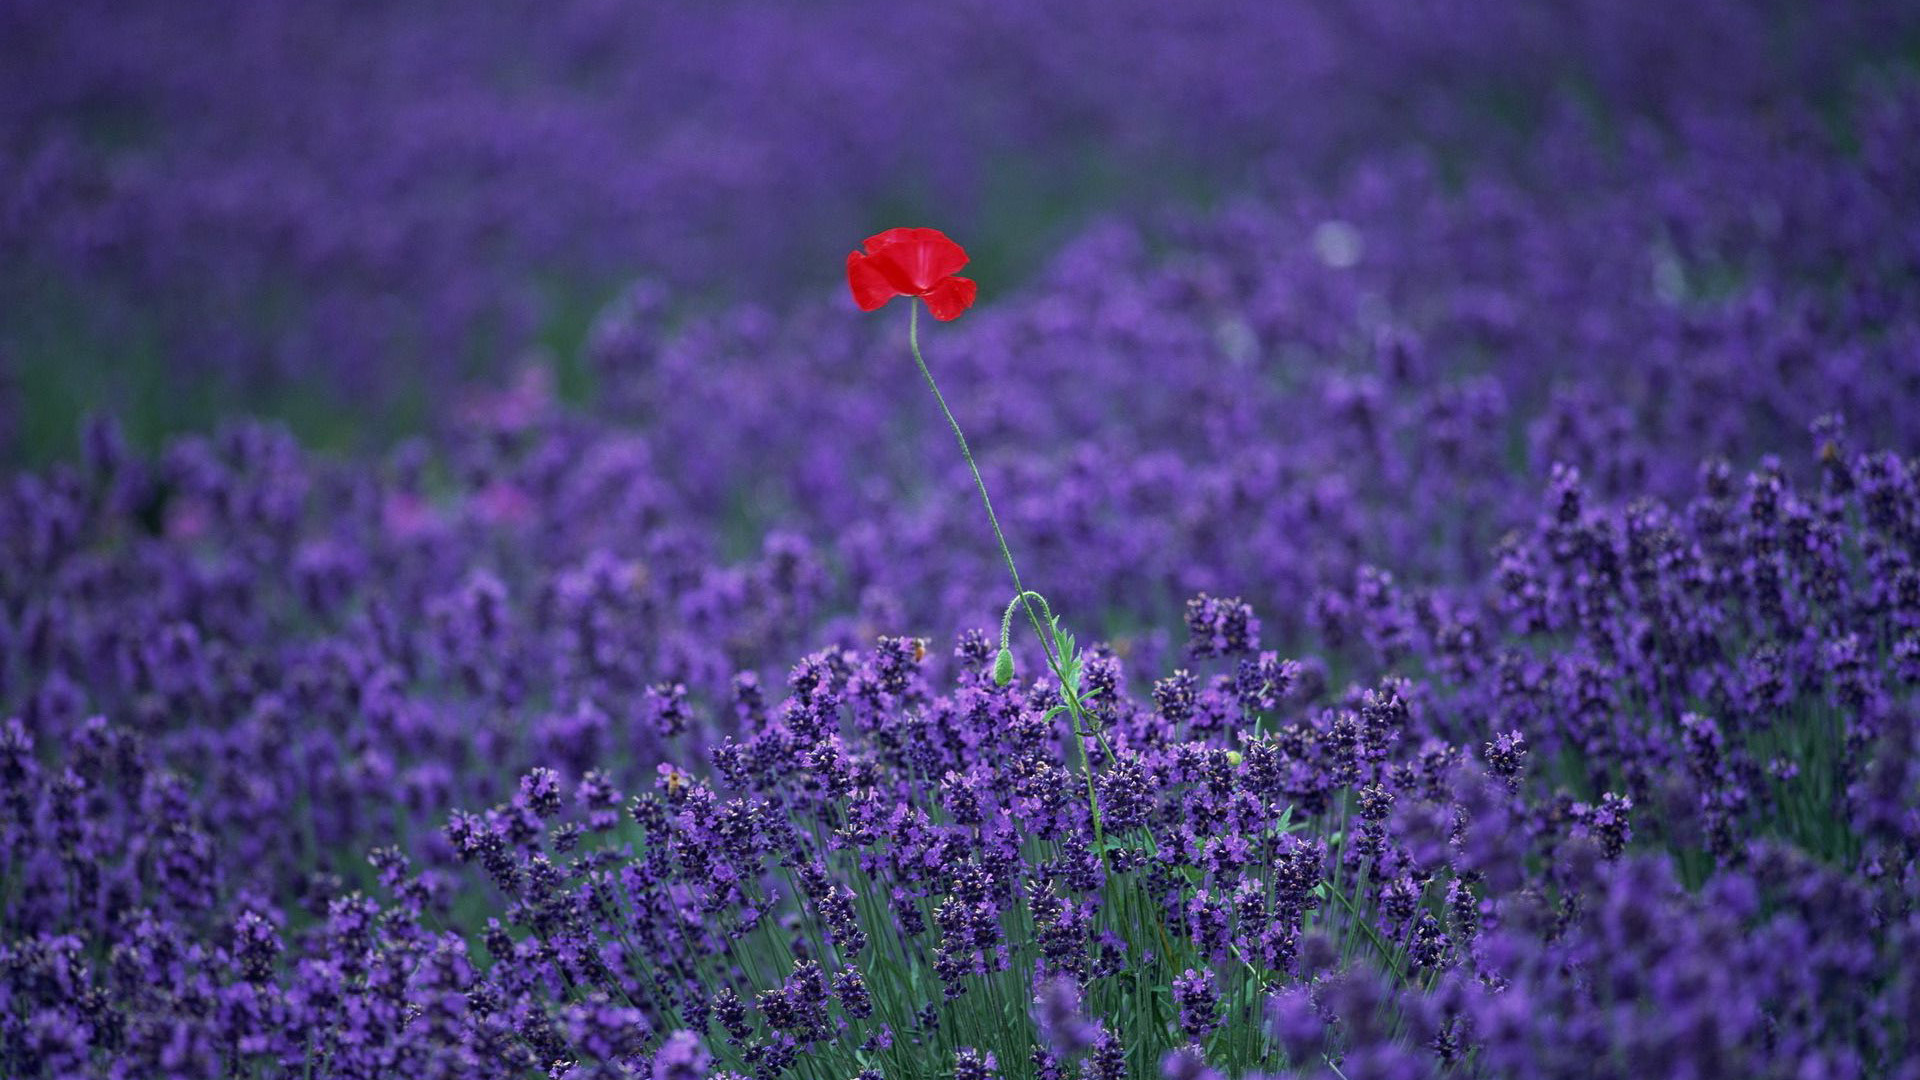 Lavender HD Wallpapers - Wallpaper, High Definition, High ...